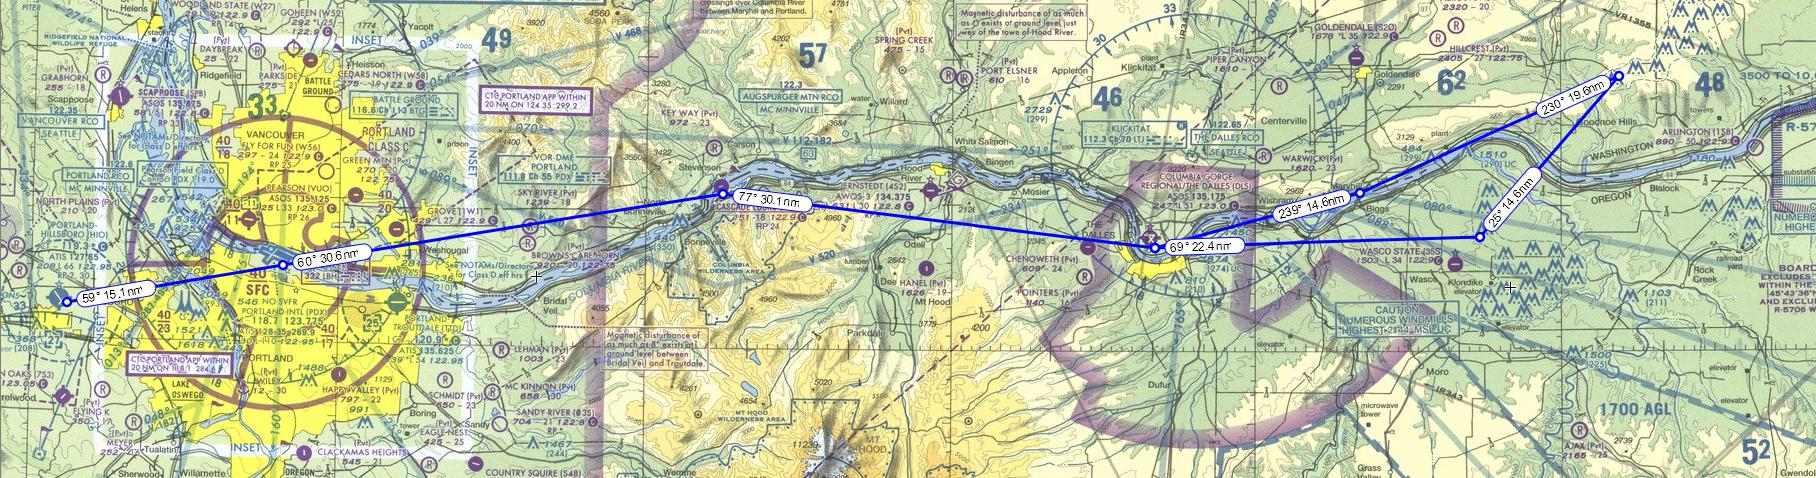 Our course for the flight